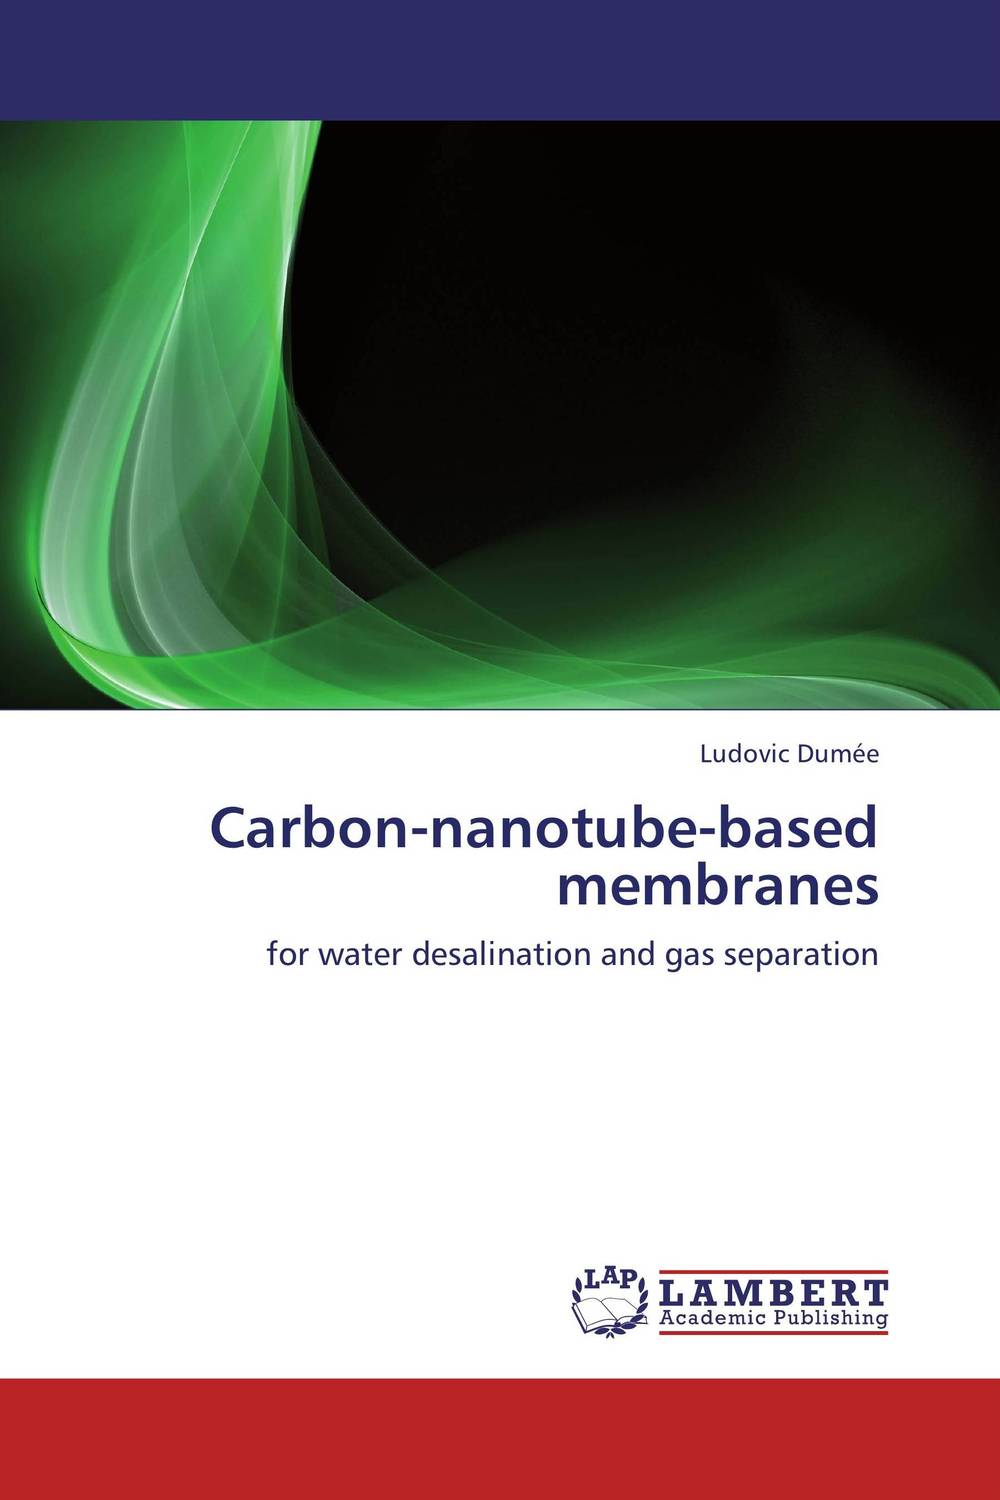 Carbon-nanotube-based membranes composite structures design safety and innovation